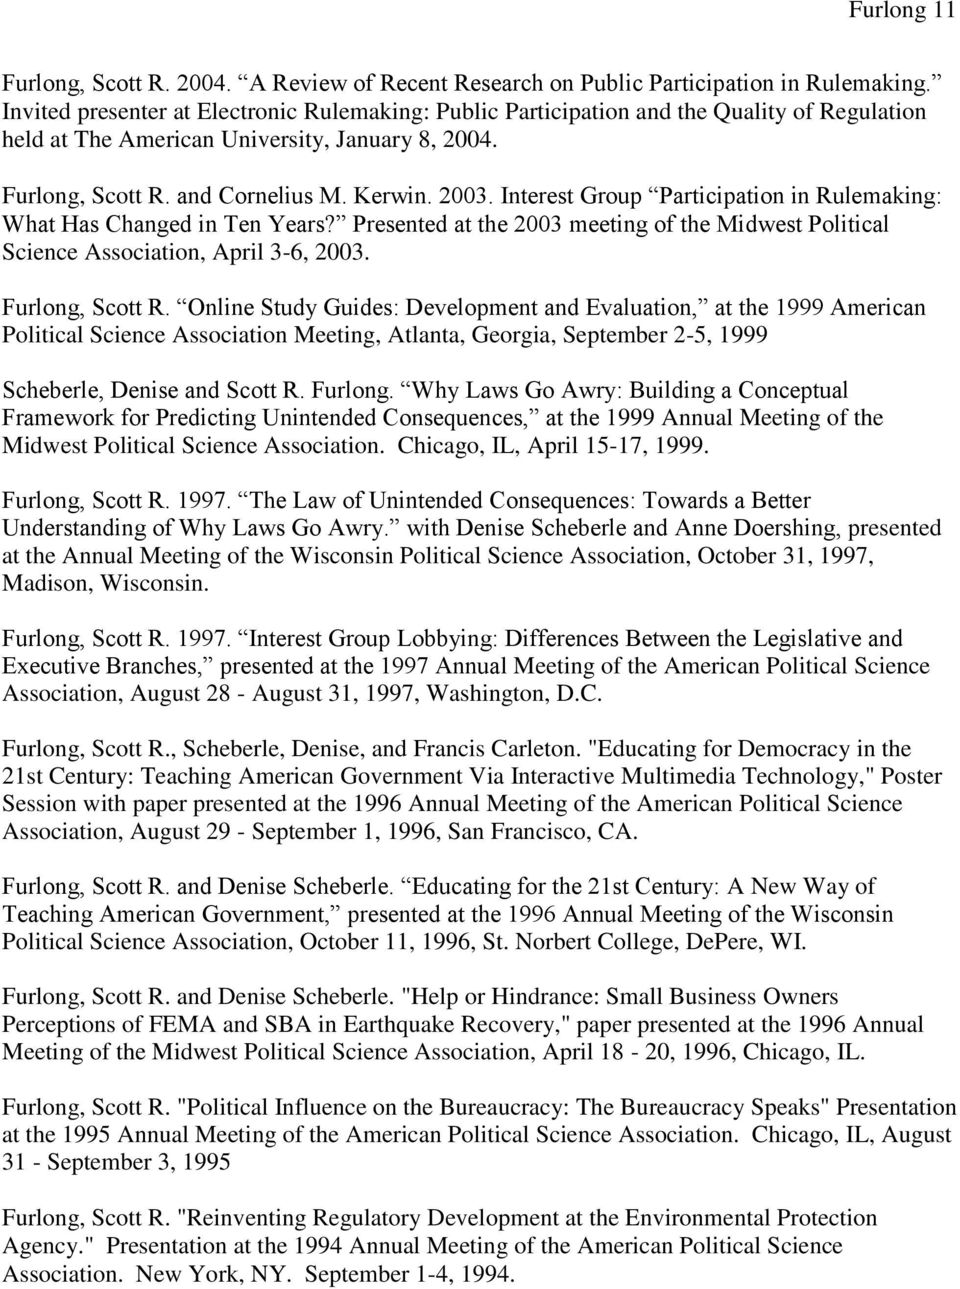 Interest Group Participation in Rulemaking: What Has Changed in Ten Years? Presented at the 2003 meeting of the Midwest Political Science Association, April 3-6, 2003. Furlong, Scott R.